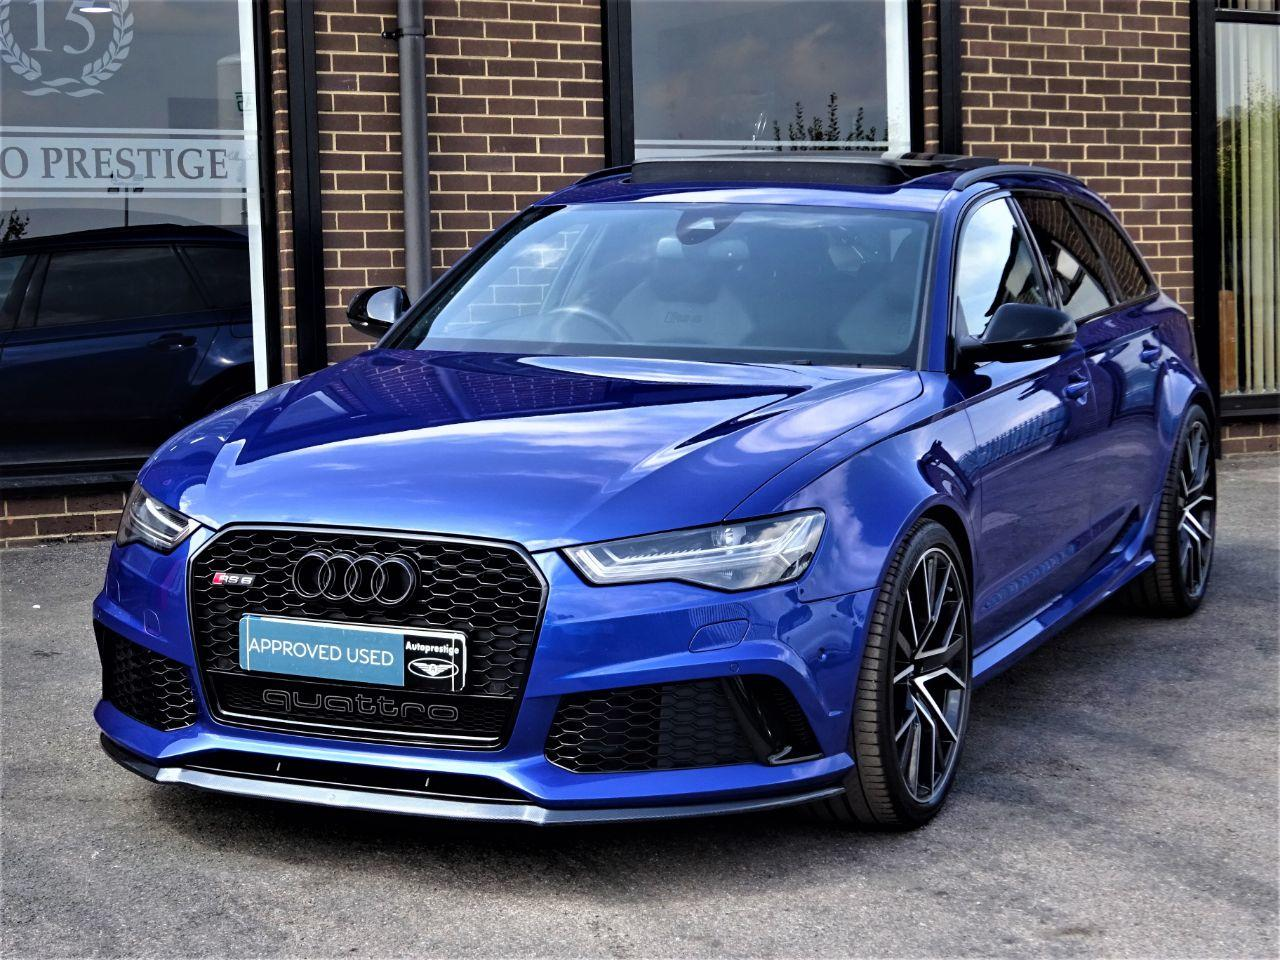 Audi RS6 4.0T FSI Quattro RS 6 Performance 5dr Tip Auto MASSIVE SPEC MANY EXTRAS 1 OWNER Estate Petrol Blue at Autoprestige Bradford